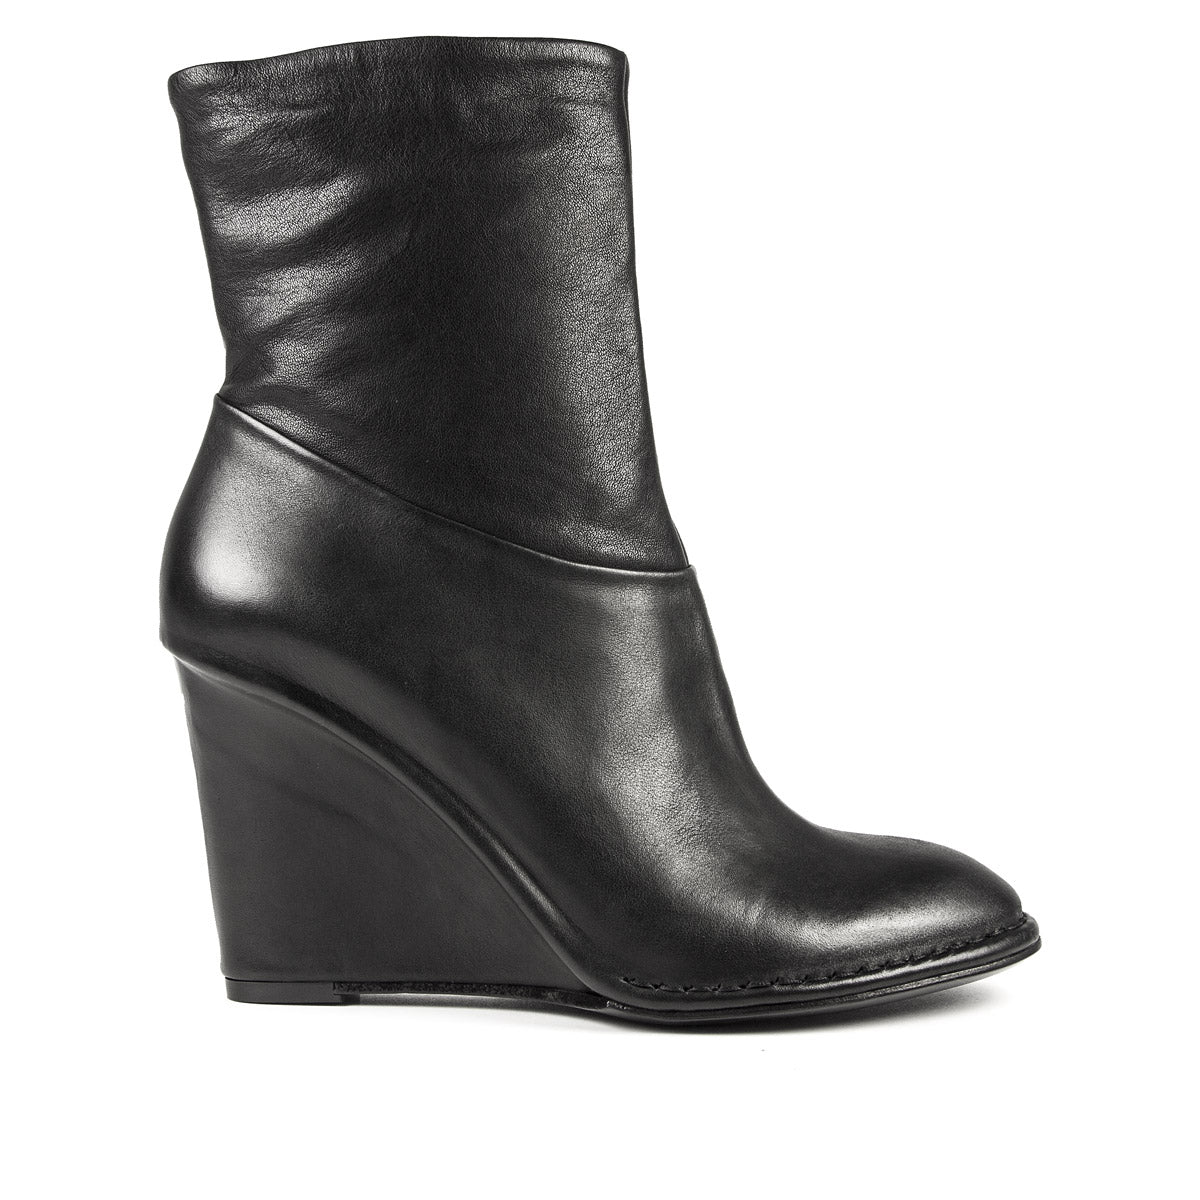 ANKLE BOOT 10647 Nero